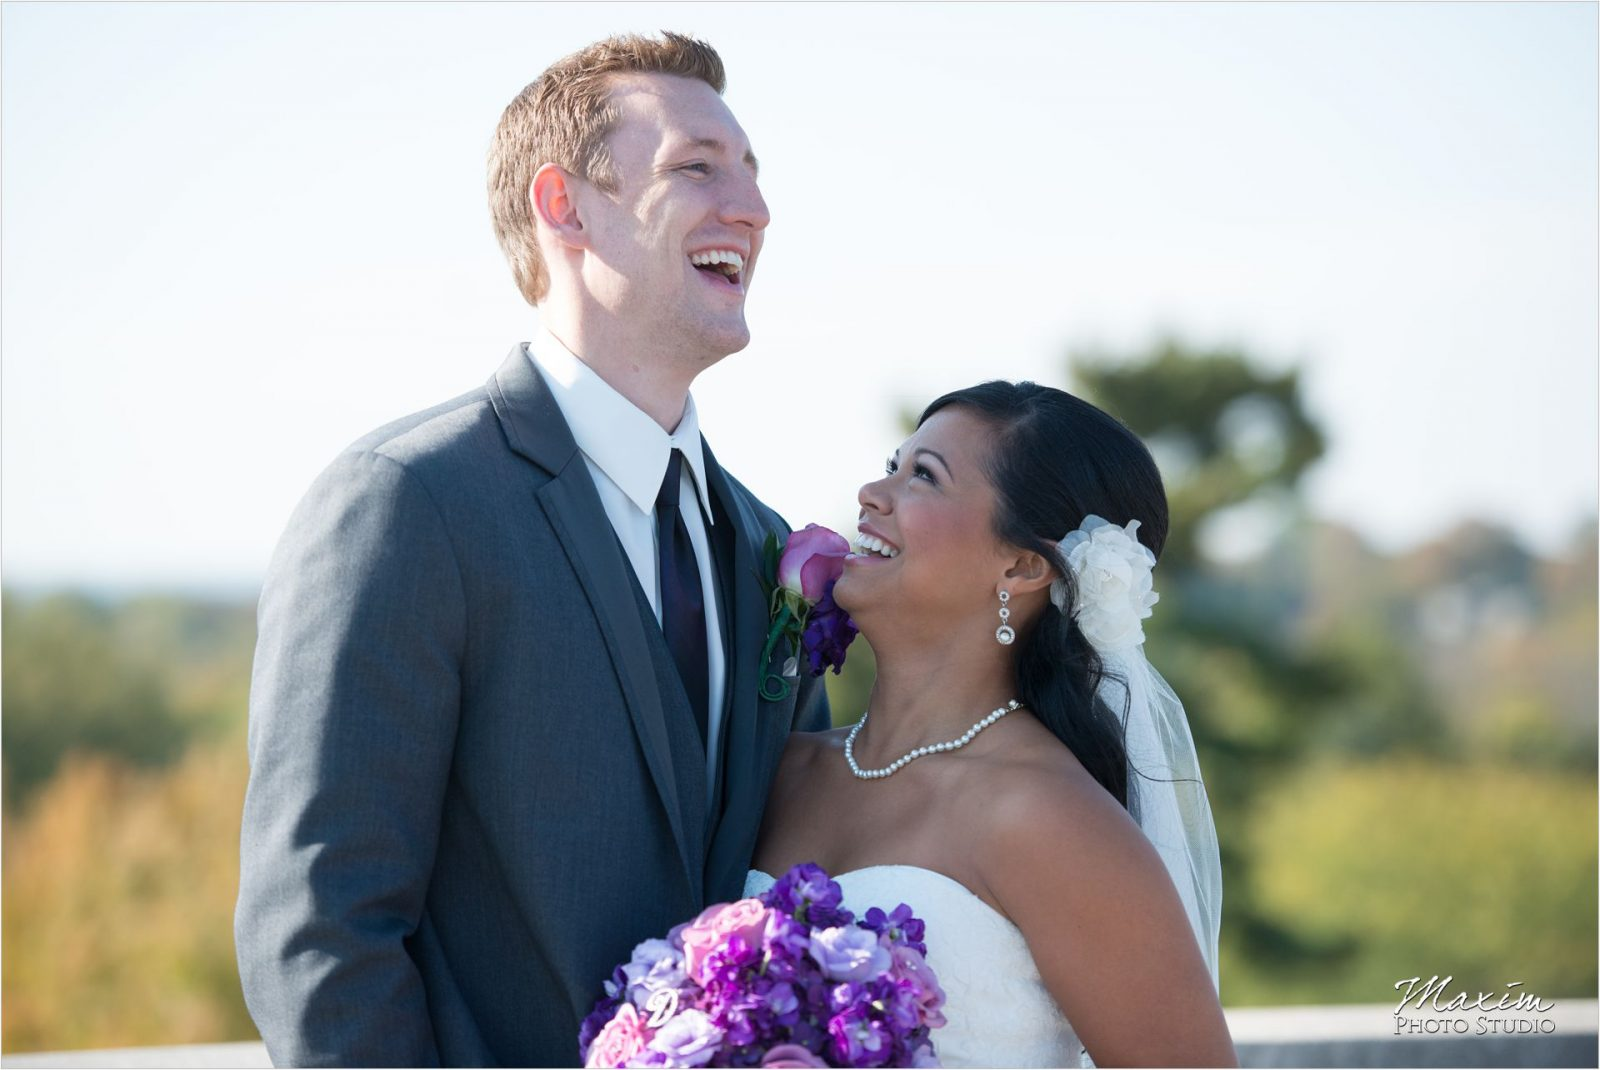 Ault Park Cincinnati Wedding Ceremony Bride Groom laughing